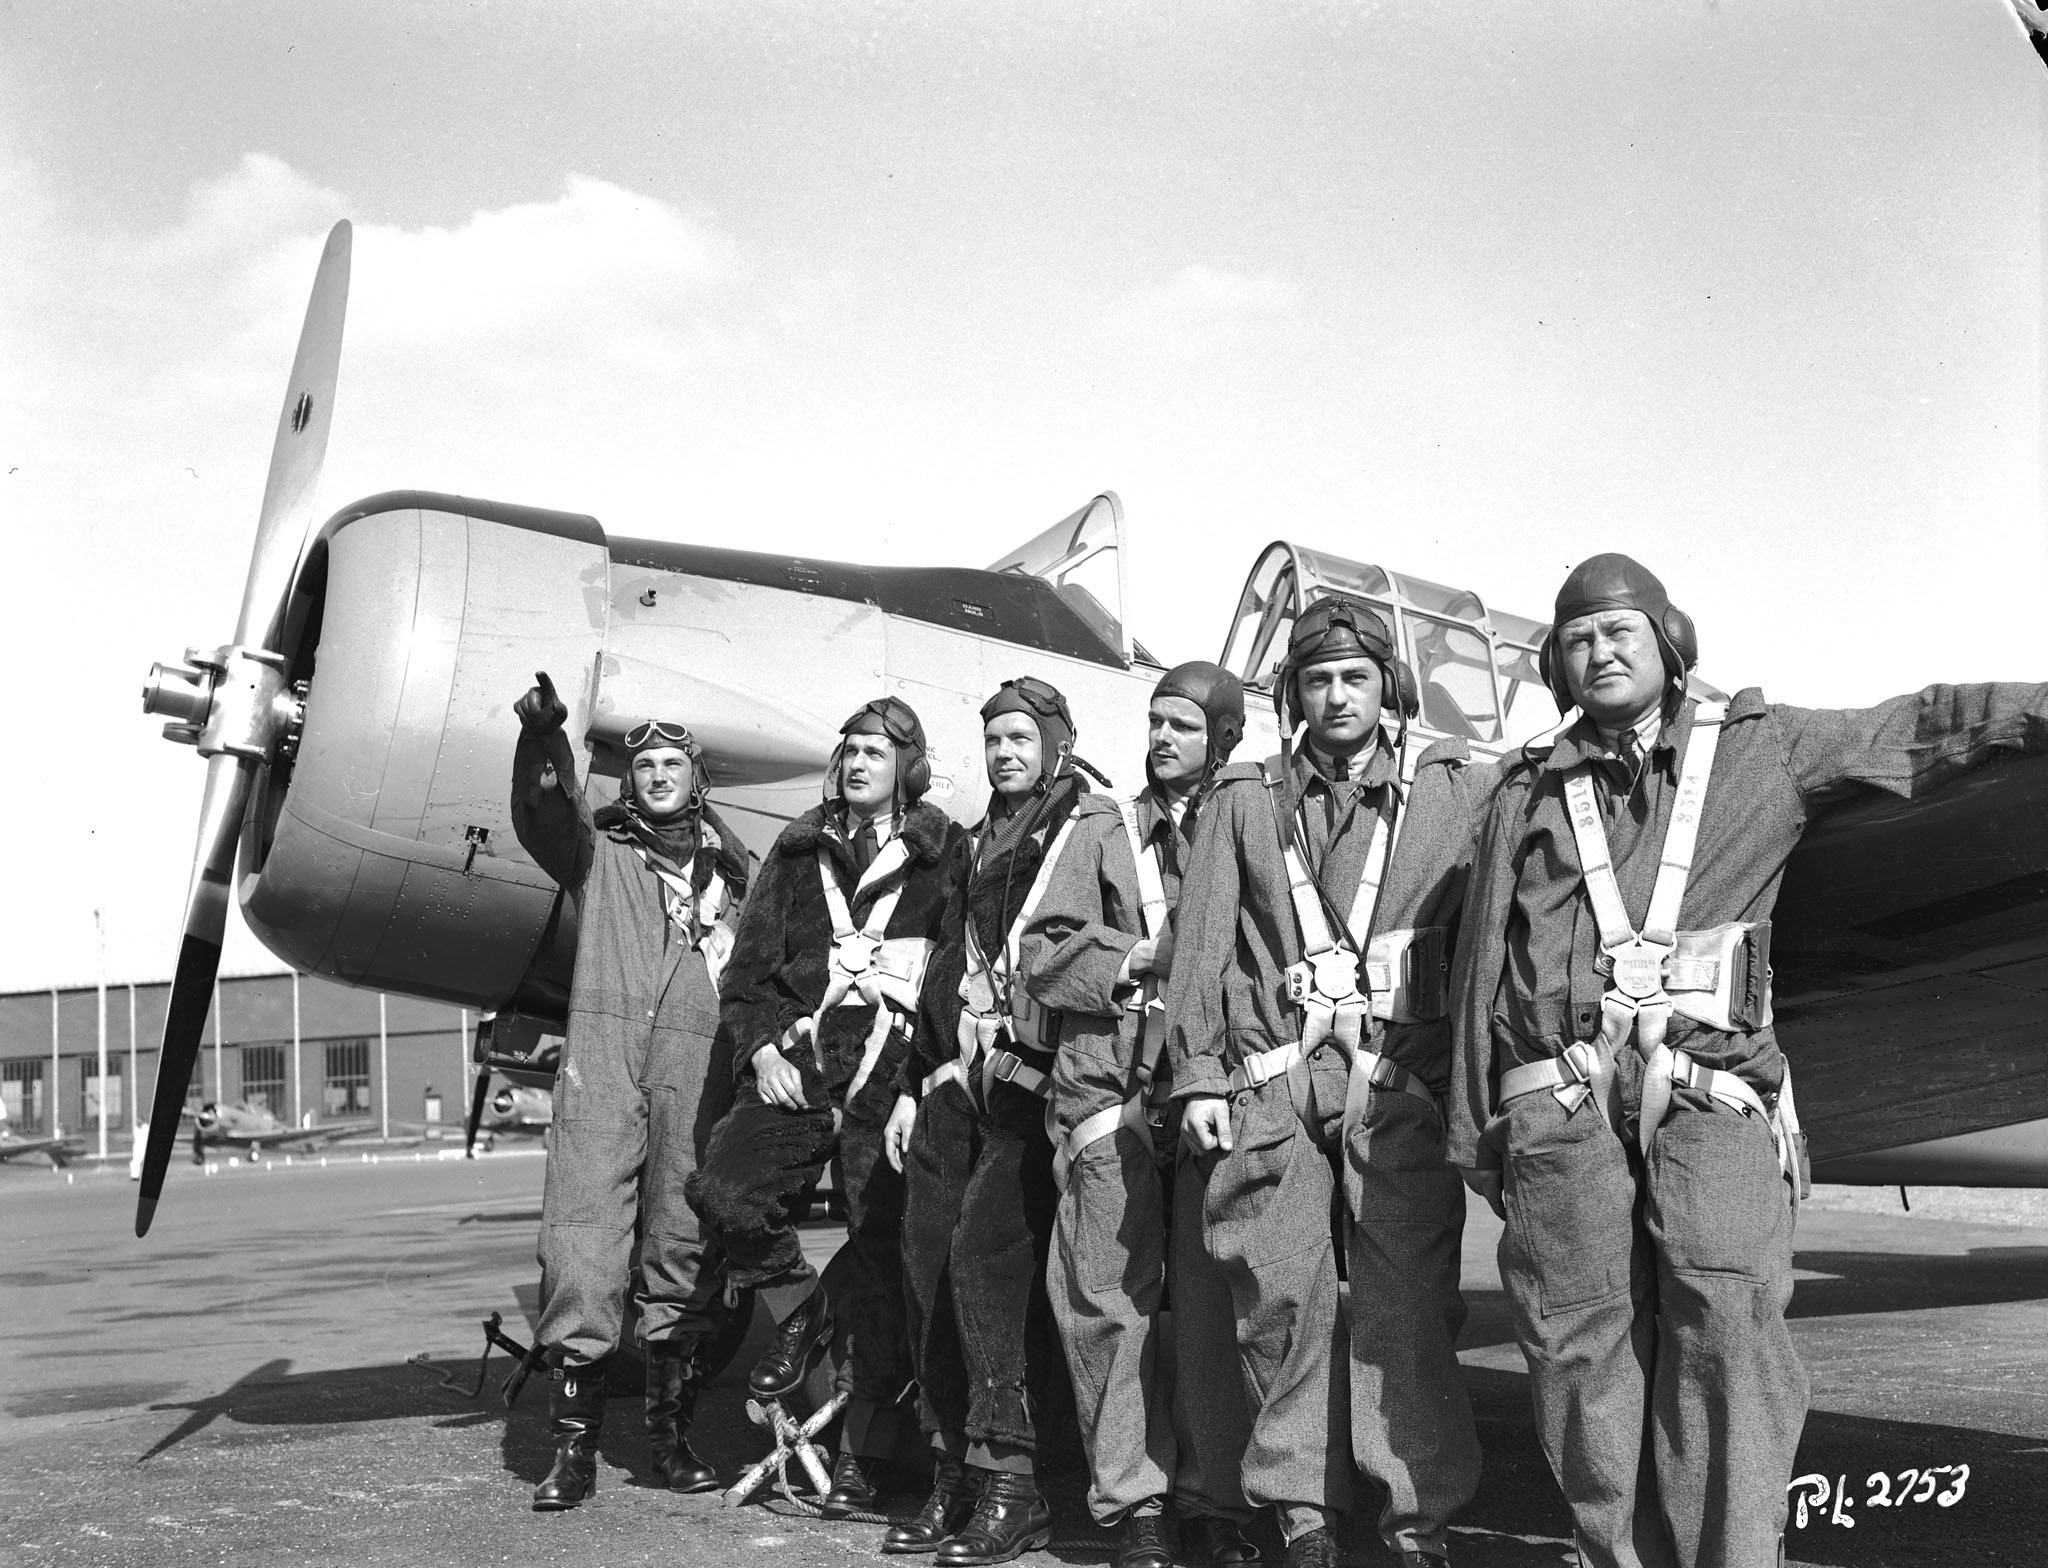 This photo of American airmen, all in the rank of leading aircraftman, was taken at RCAF Uplands, near Ottawa, on April 25, 1941. From left to right: J.G. Magee of Washington, D.C.; A.C. Young of Cleveland, Ohio; C.F. Gallicher of Tulsa, Oklahoma;  C.G. Johnston of Chicago, Illinois; A.B. Cleaveland of Springfield, Illinois; and O.N. Leatherman of Lima, Ohio. PHOTO: DND Archives, PL-2753